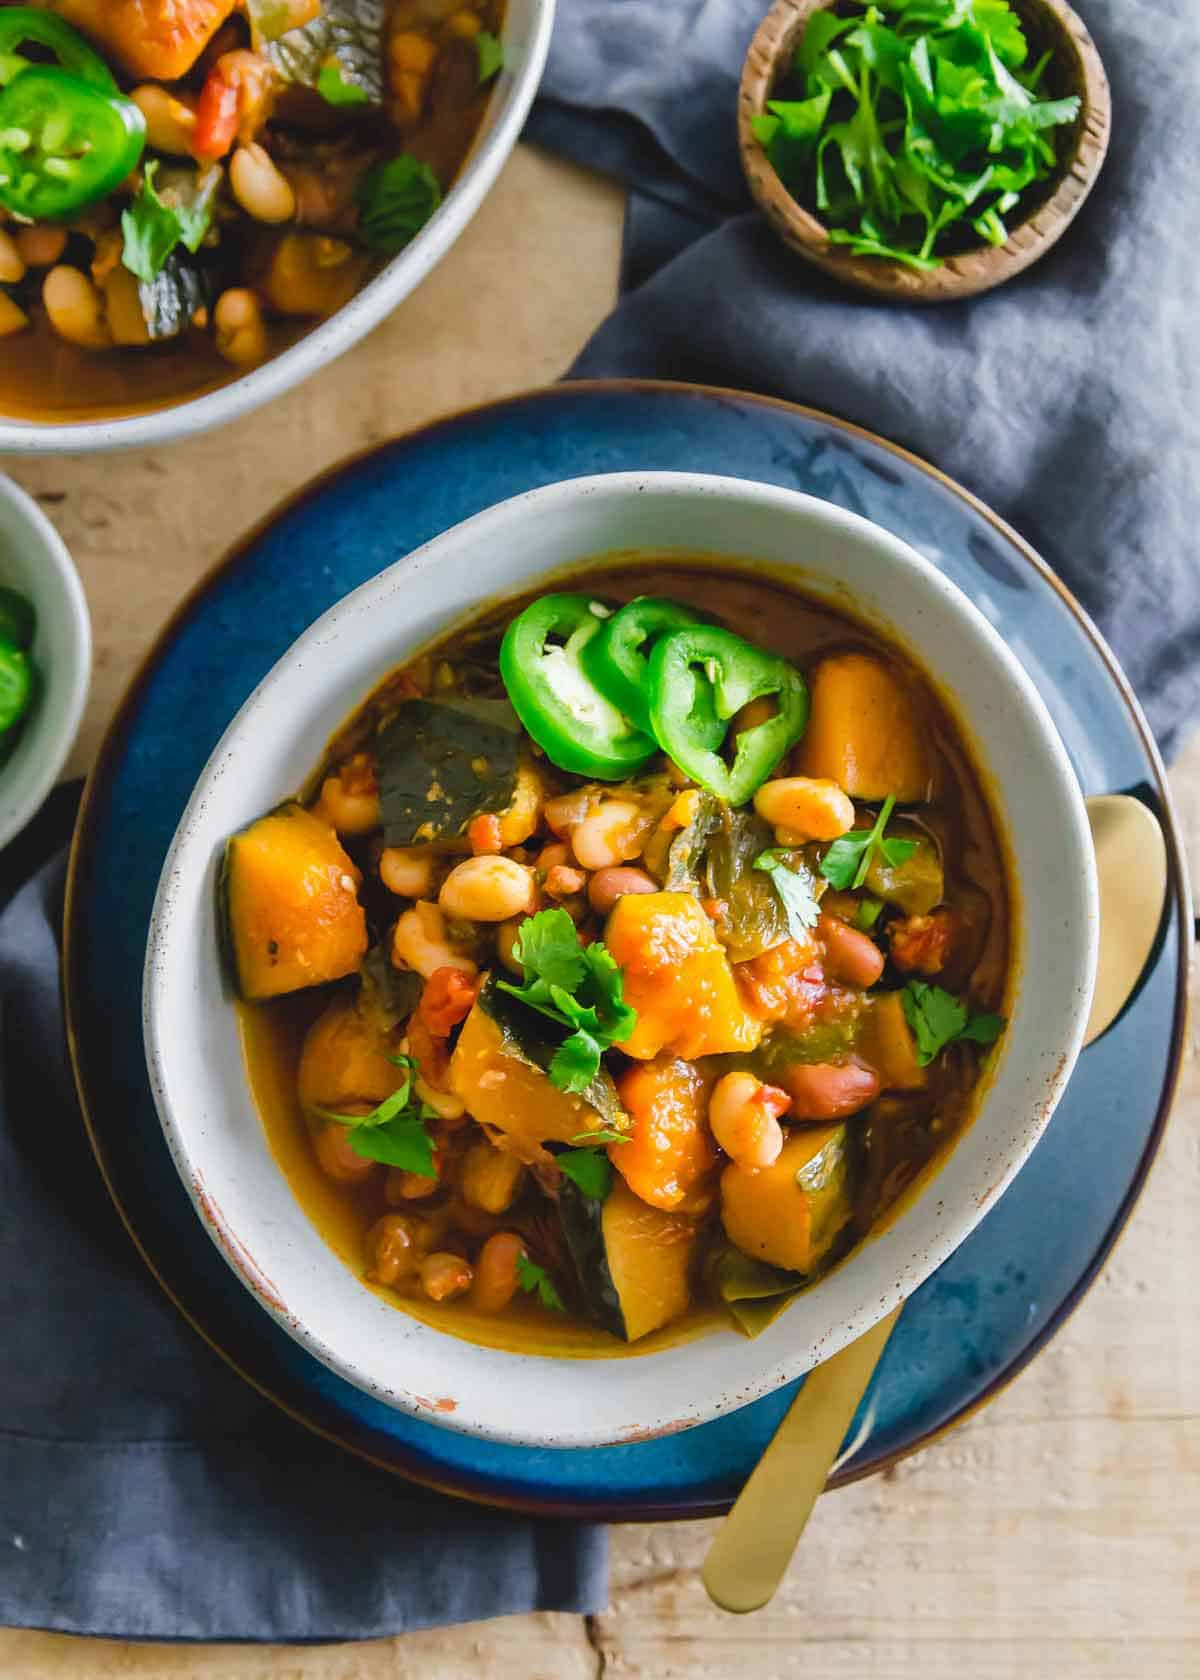 Hearty vegetarian chili with kabocha squash made in the slow cooker.